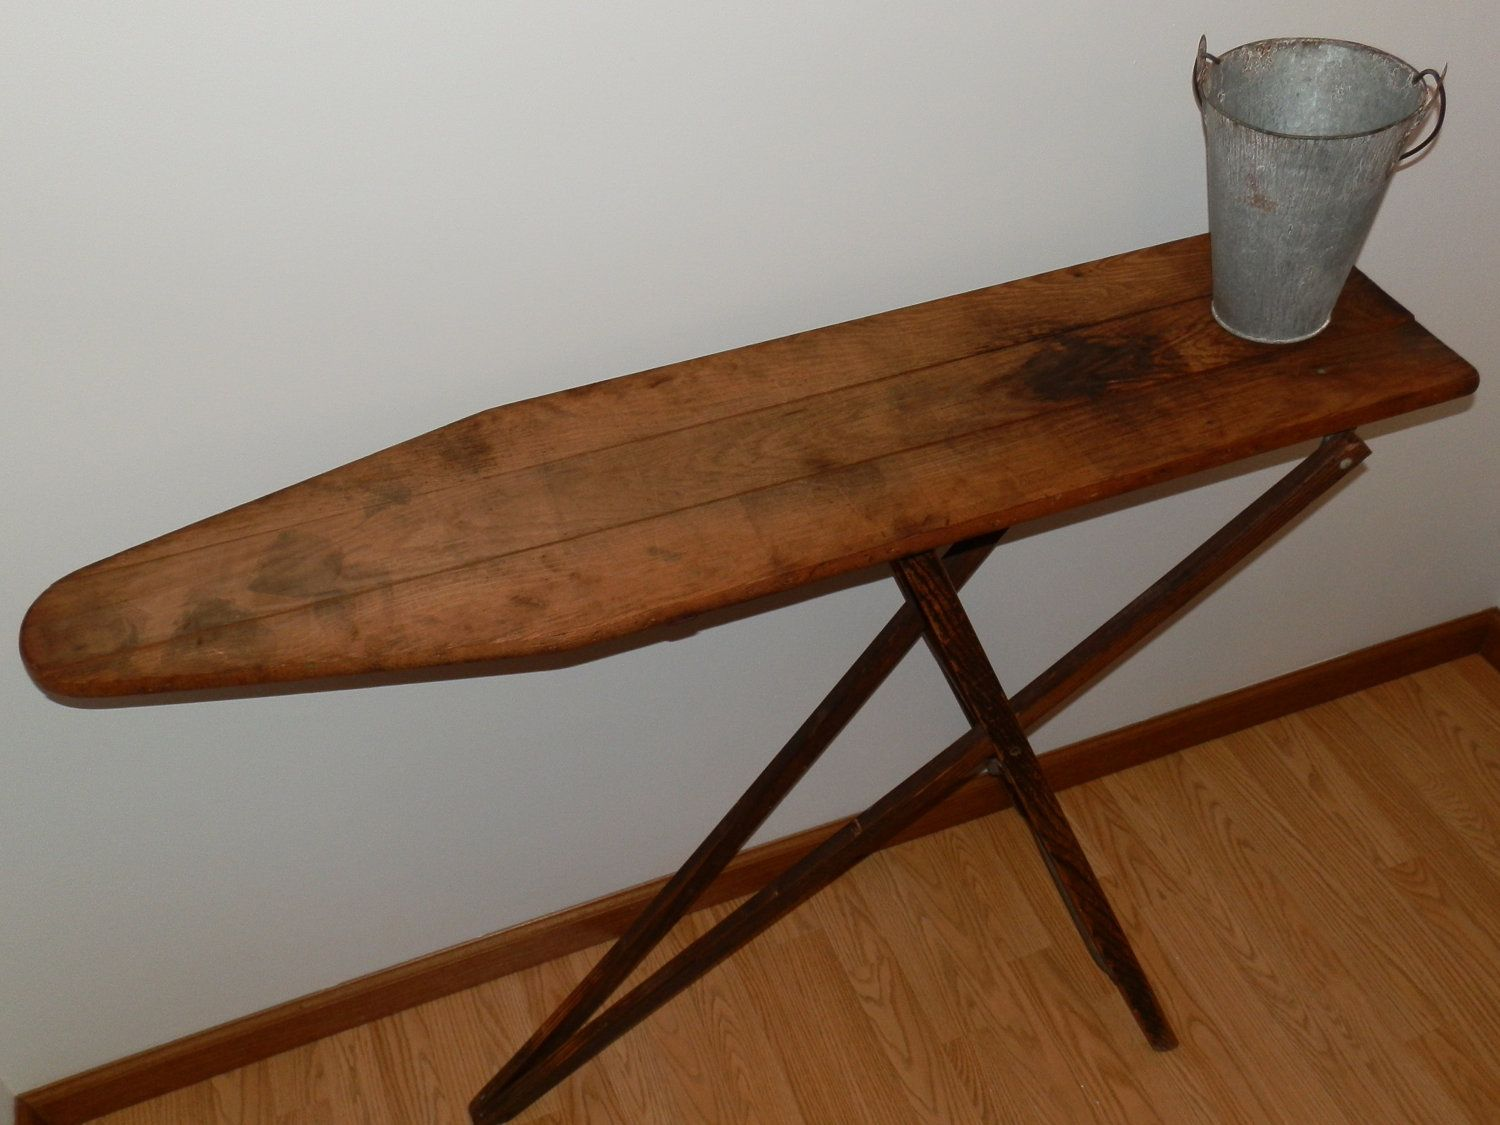 antique wooden ironing board in great condition. perfect as a table or as a  rustic display piece in the home or garden. - Vintage Ironing Board. I Have 2 Of These And My Grandmother's